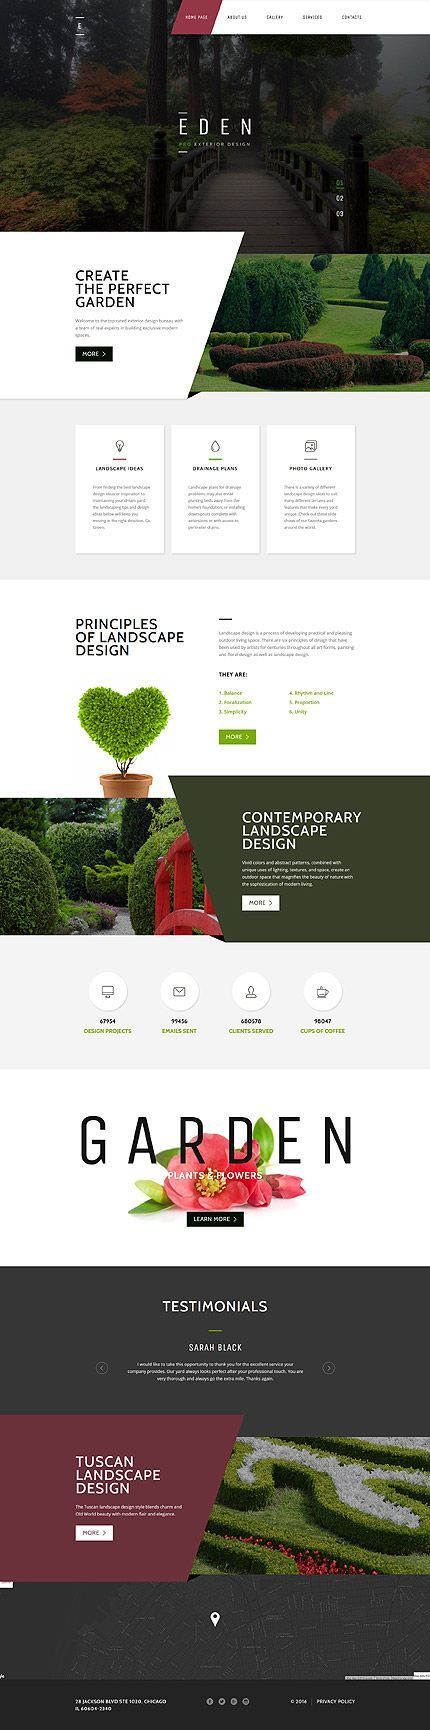 25+ Best Ideas About Gardening Websites On Pinterest | Garden Site